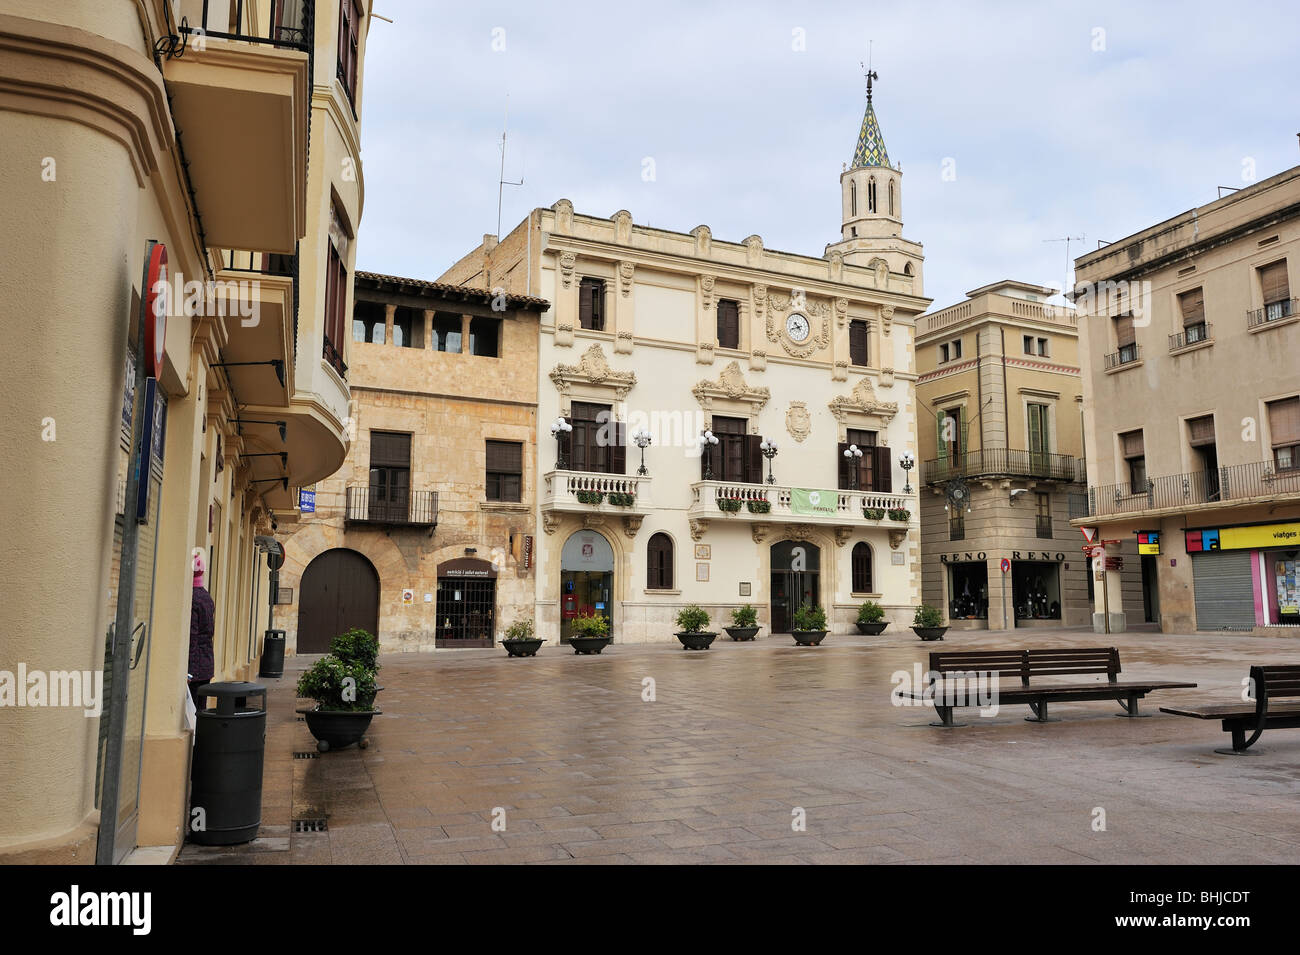 Square and the town council, Vilafranca del Penedes. - Stock Image